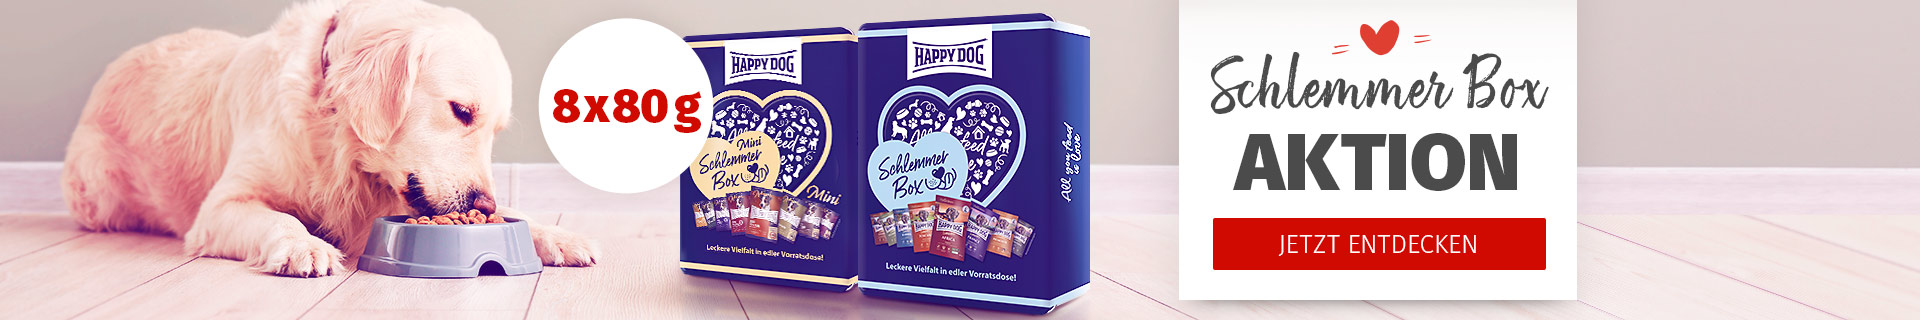 Happy Dog - Schlemmerbox